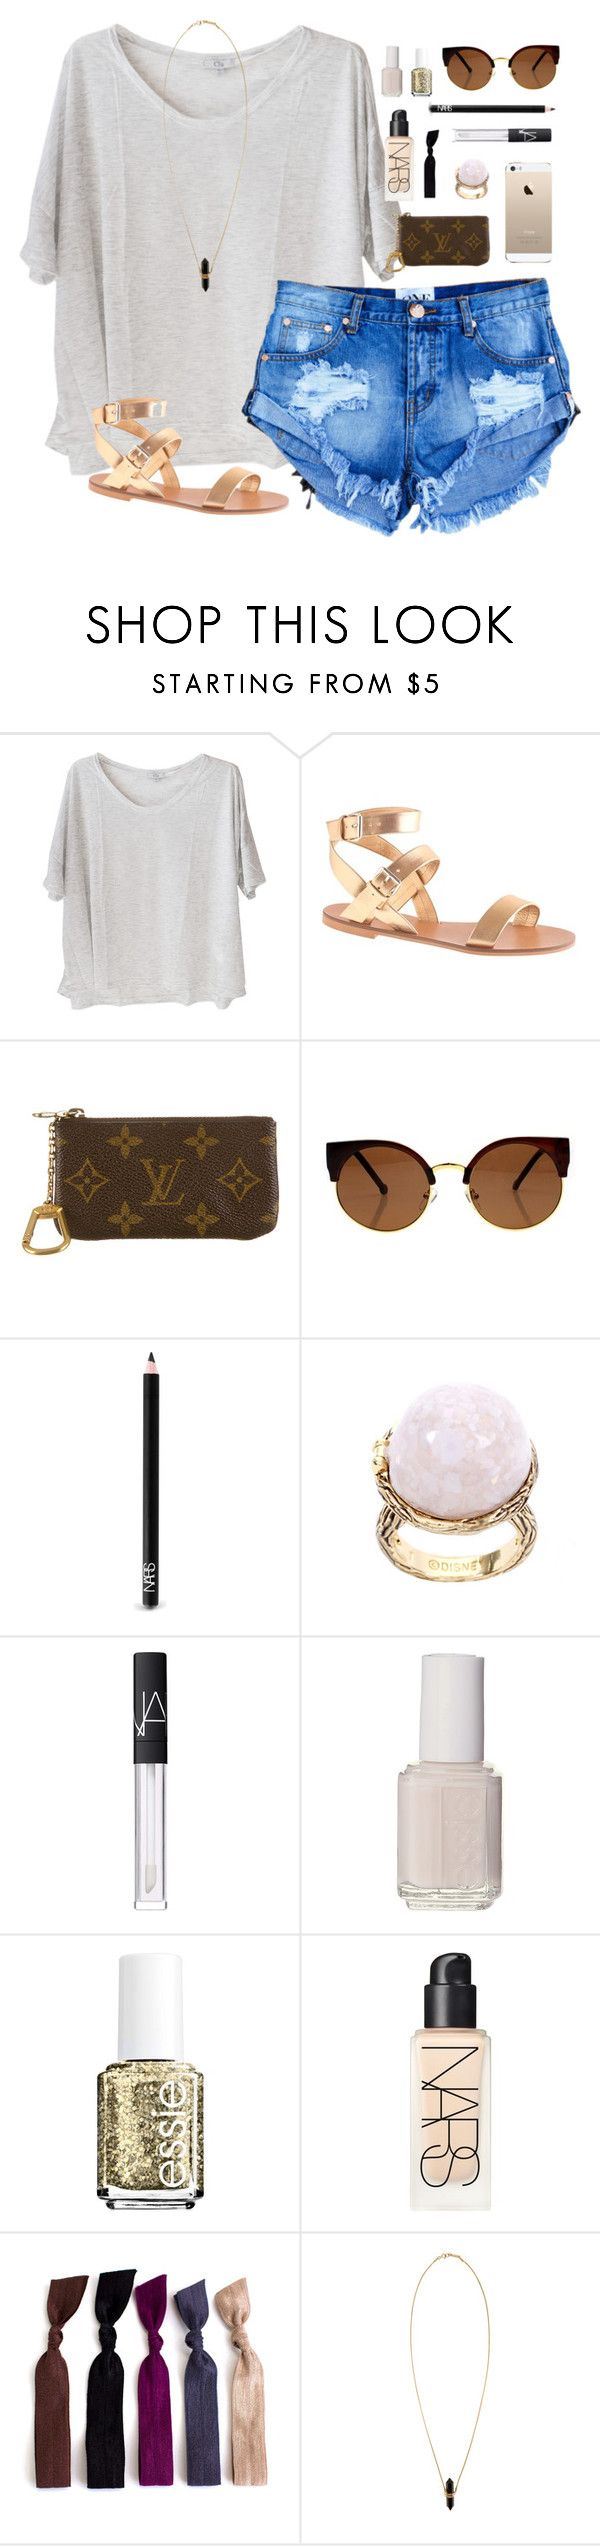 """""""75 and sunny"""" by classically-preppy ❤ liked on Polyvore featuring Clu, J.Crew, Louis Vuitton, NARS Cosmetics, Disney Couture, Essie and Isabel Marant"""